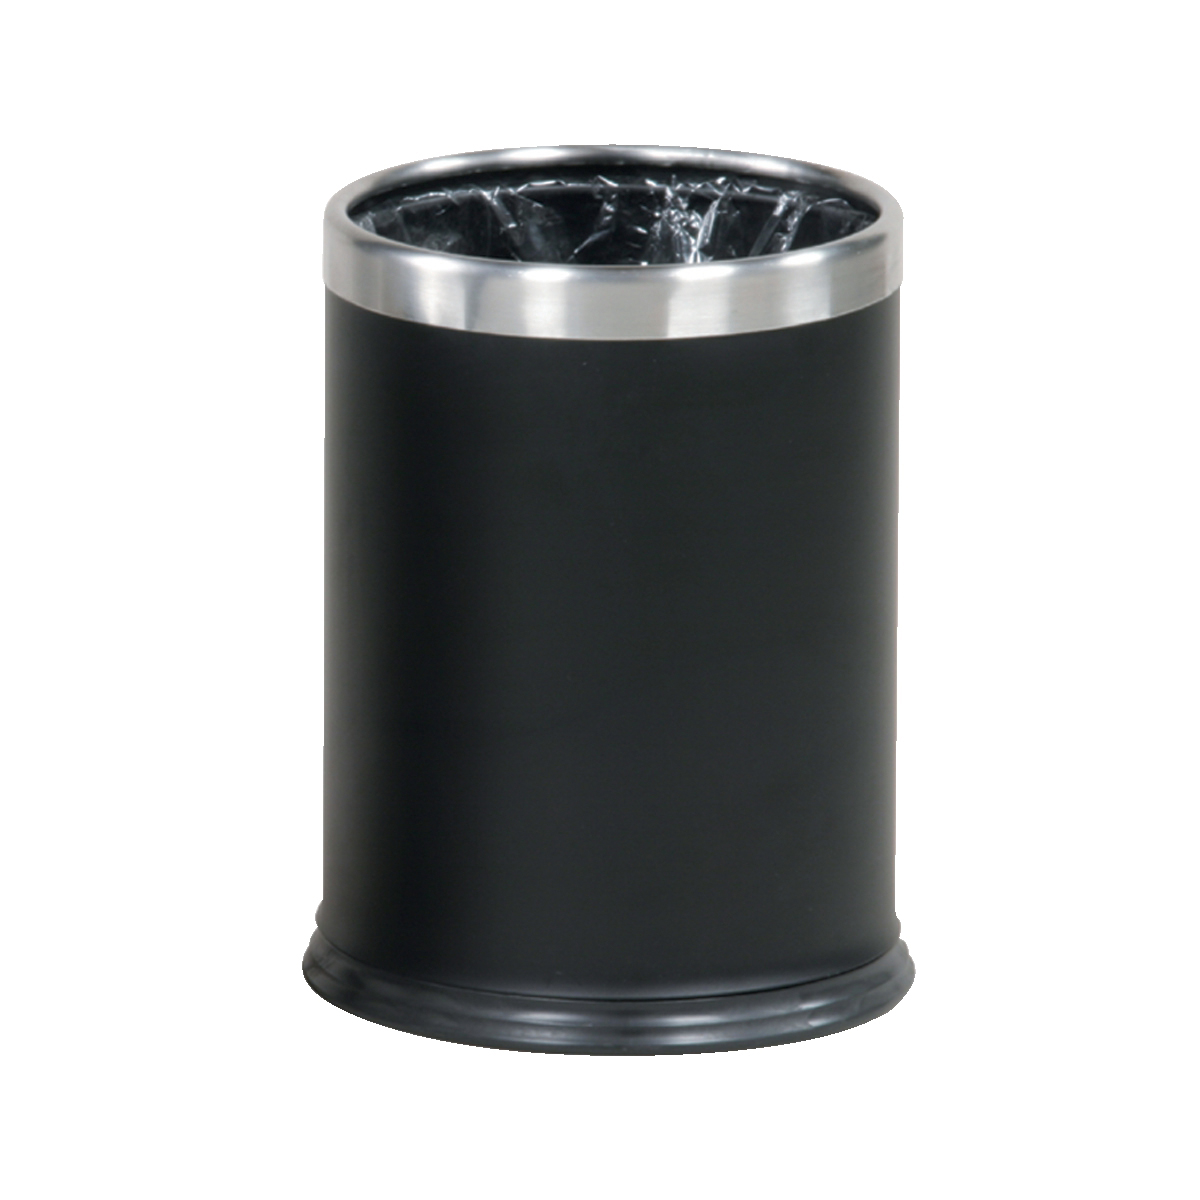 Rubbish Bins Rubbermaid Bin Hide A Bag Stainless Steel 13.2 Litres 241x318mm Black Ref FGWHB14EBK